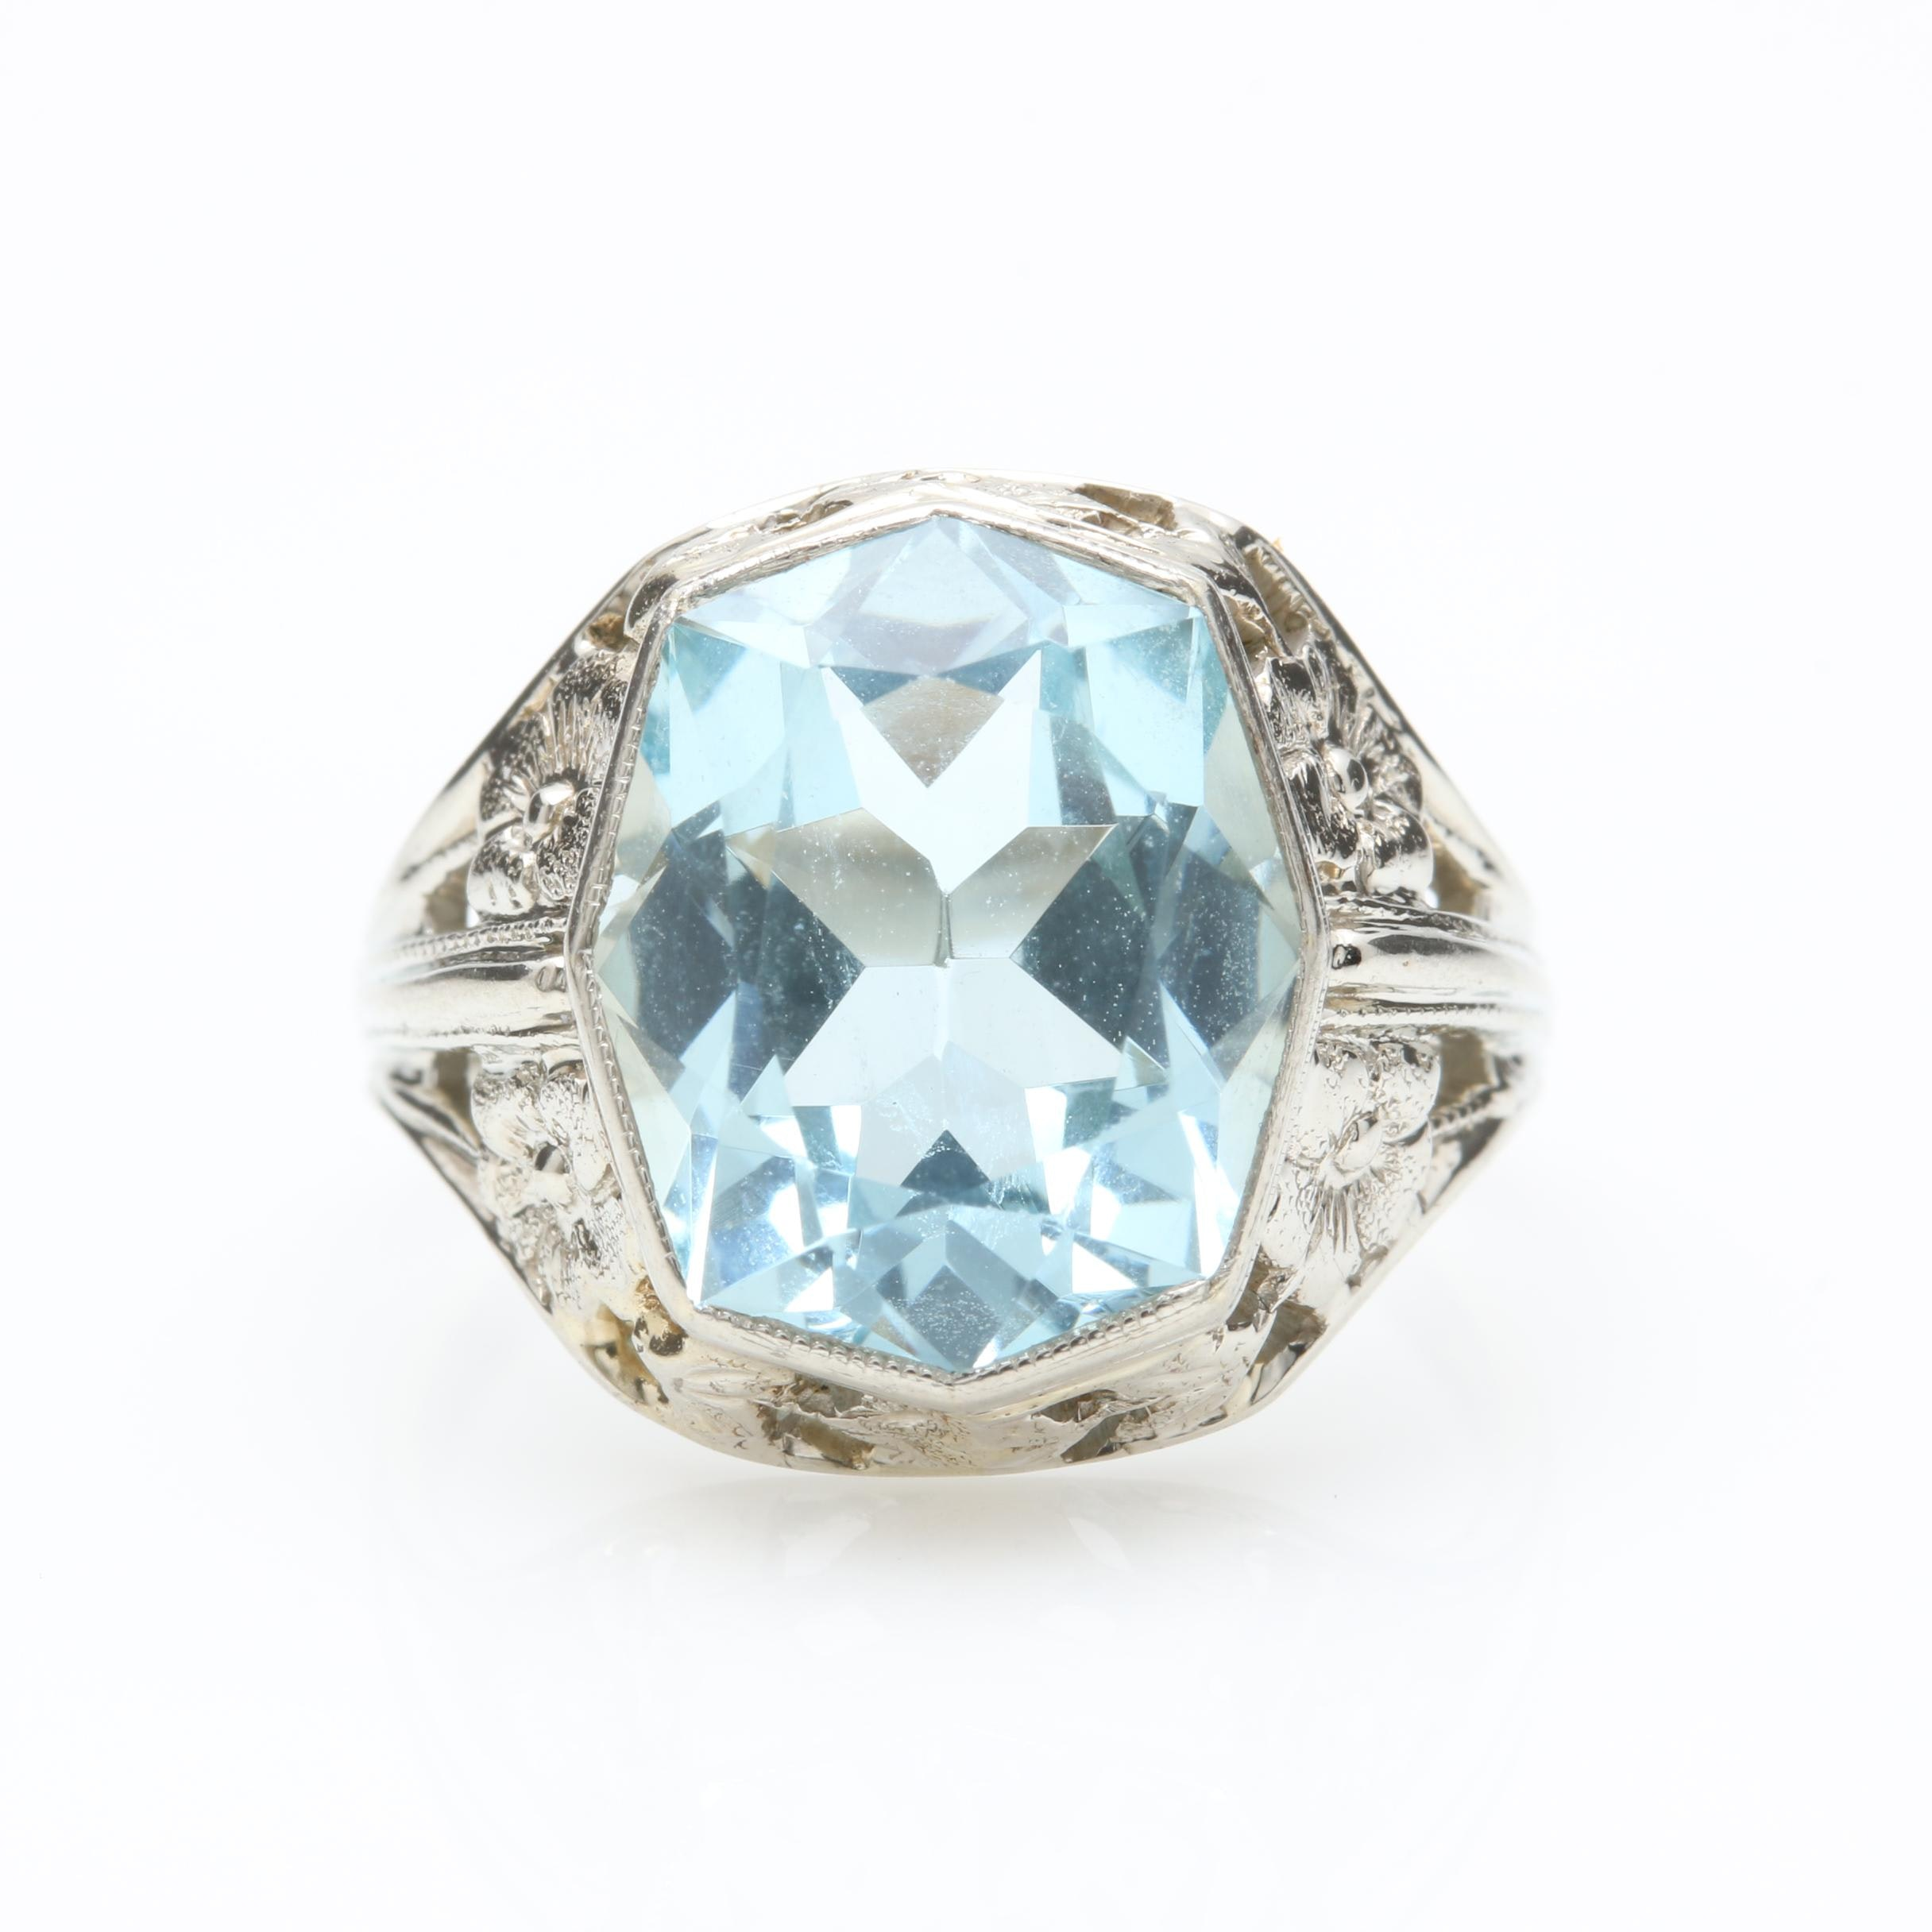 Vintage 18K White Gold 4.15 CT Aquamarine Ring